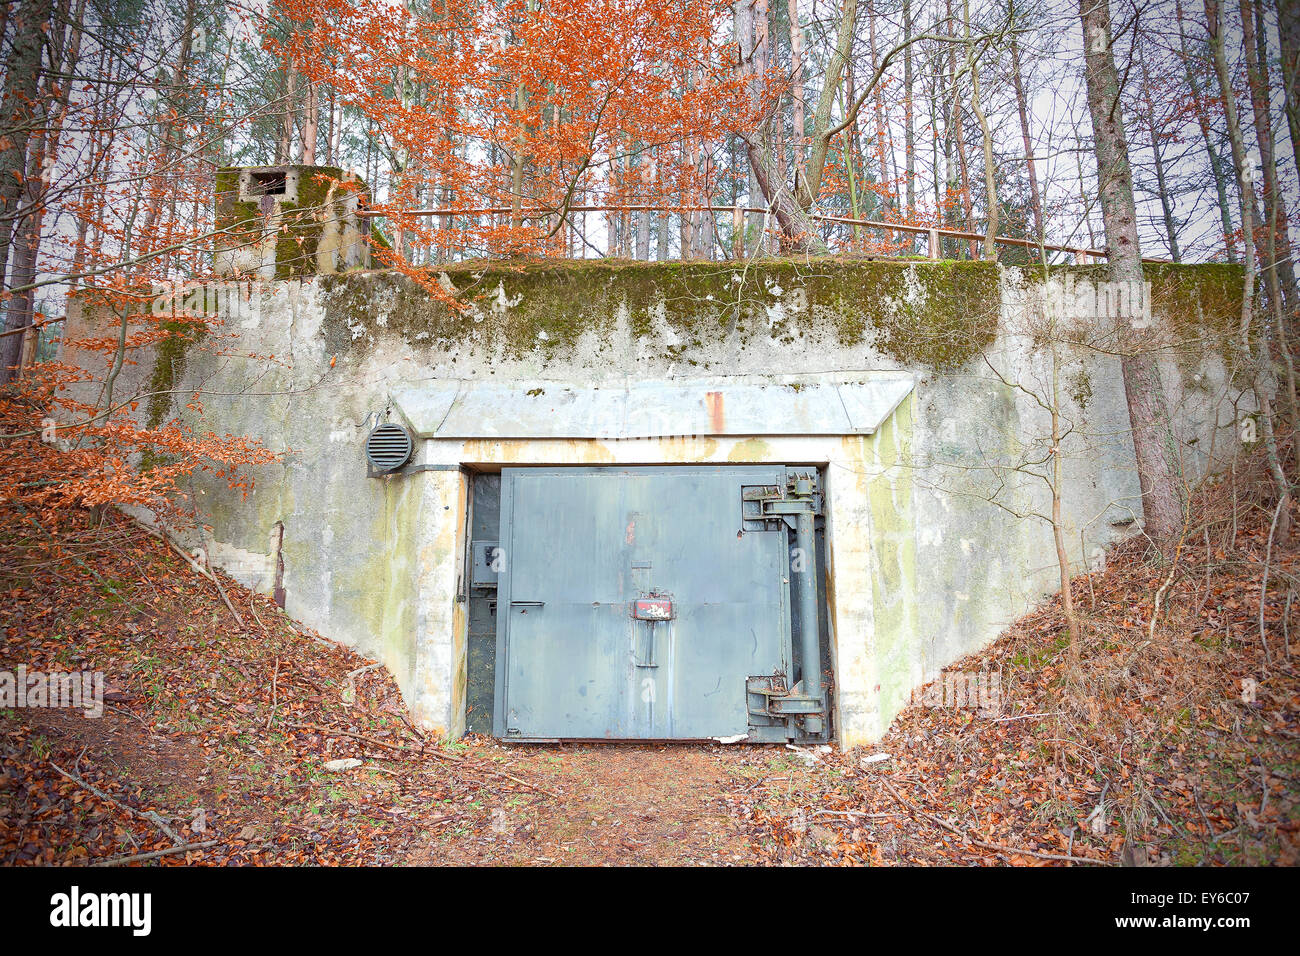 Old abandoned Cold War bunker in forest, Podborsko in Poland. - Stock Image